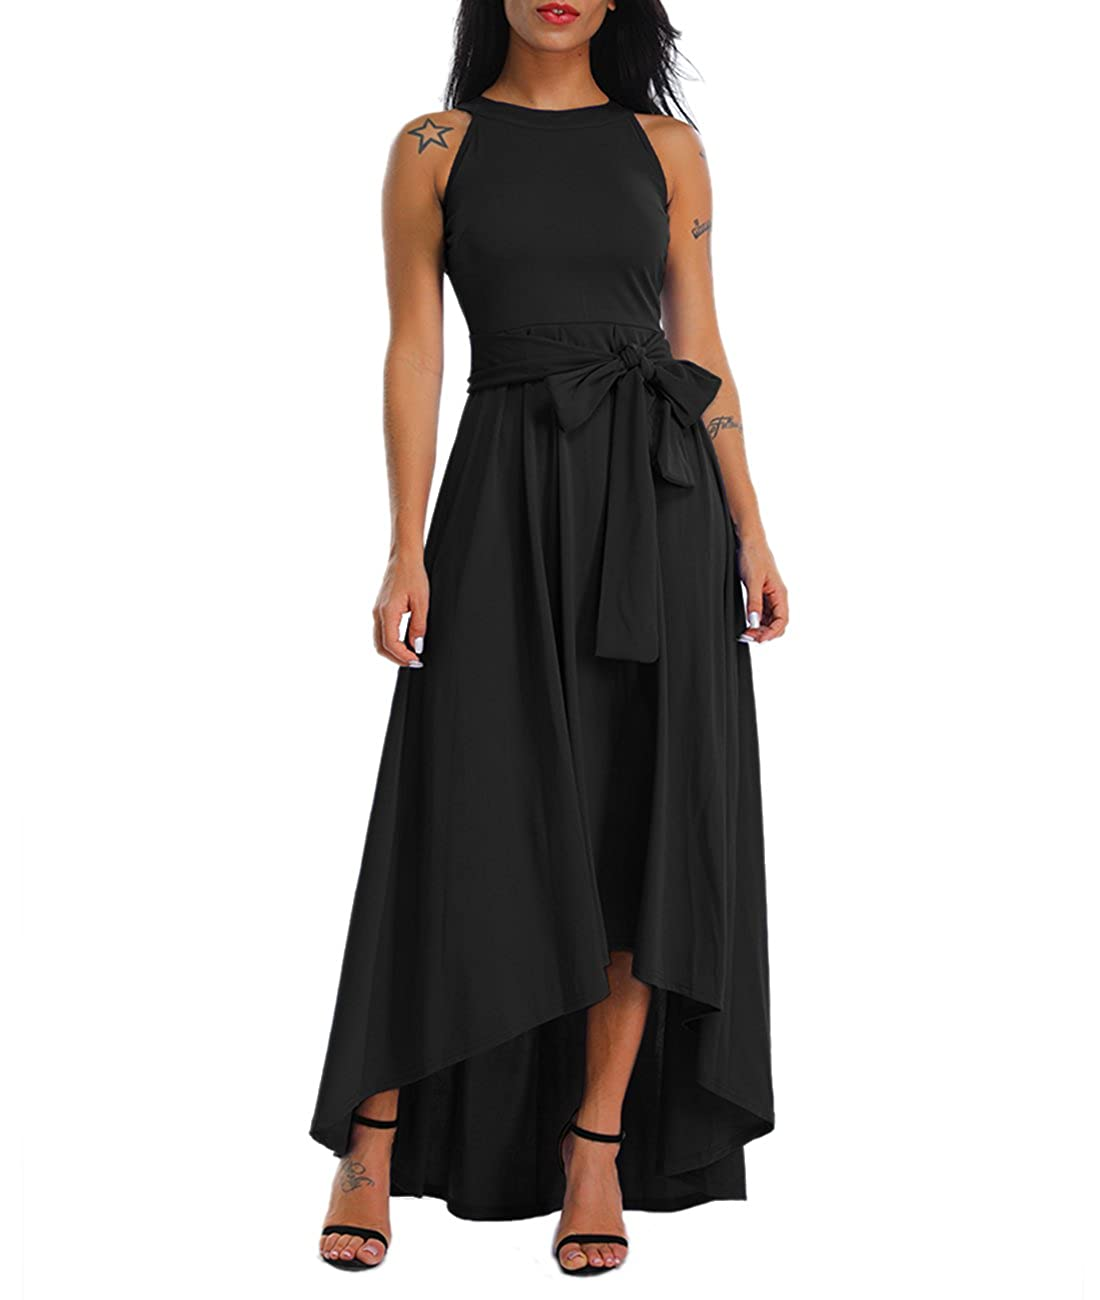 Lalagen Womens Plus Size Sleeveless Belted Party Maxi Dress with ...